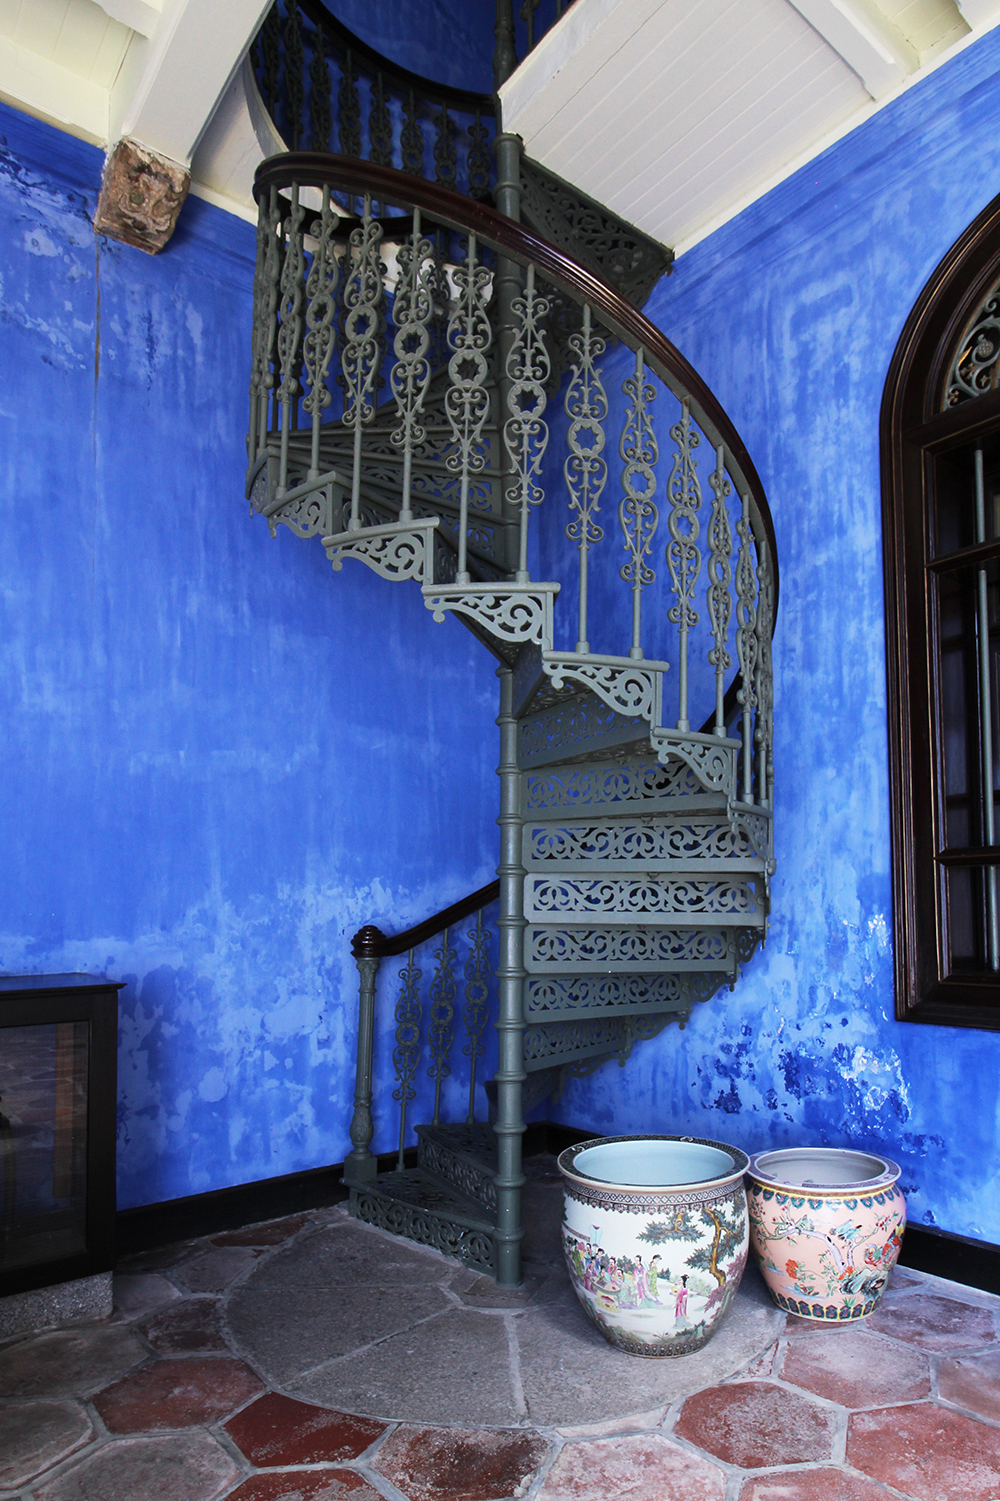 The colour blue associates with peace and order—perfect for a heritage building.